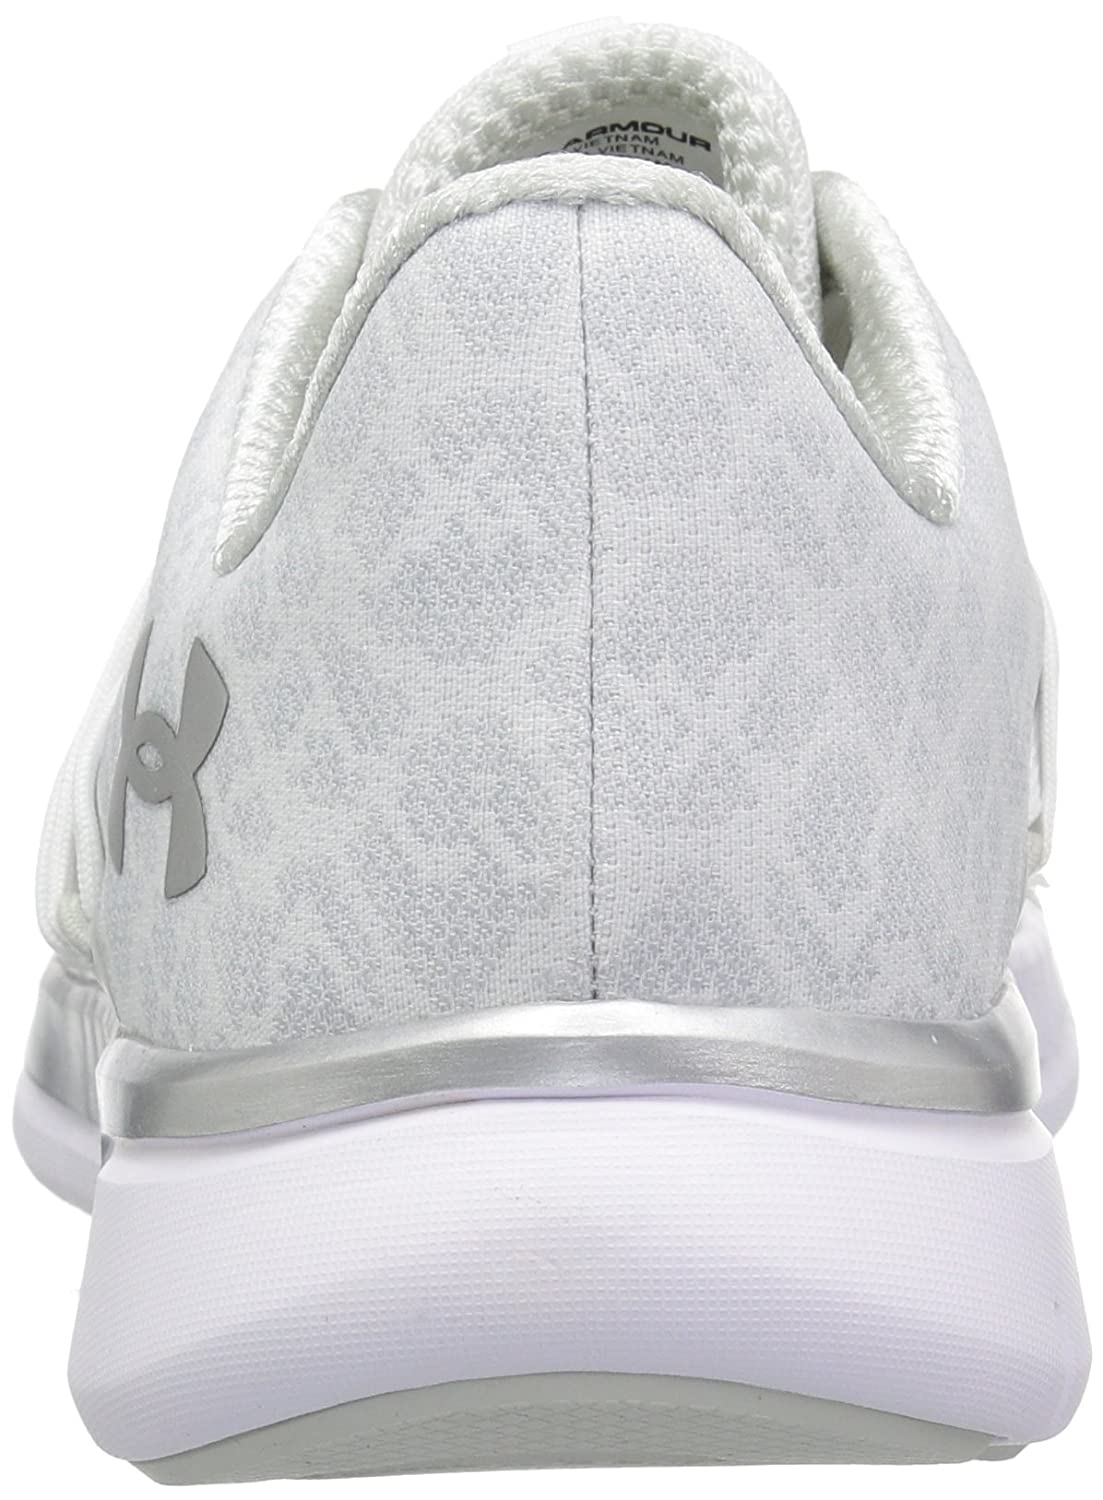 Under Armour Women's Charged Transit Running Shoe B072FR3XCJ 9 M US|White (104)/Elemental